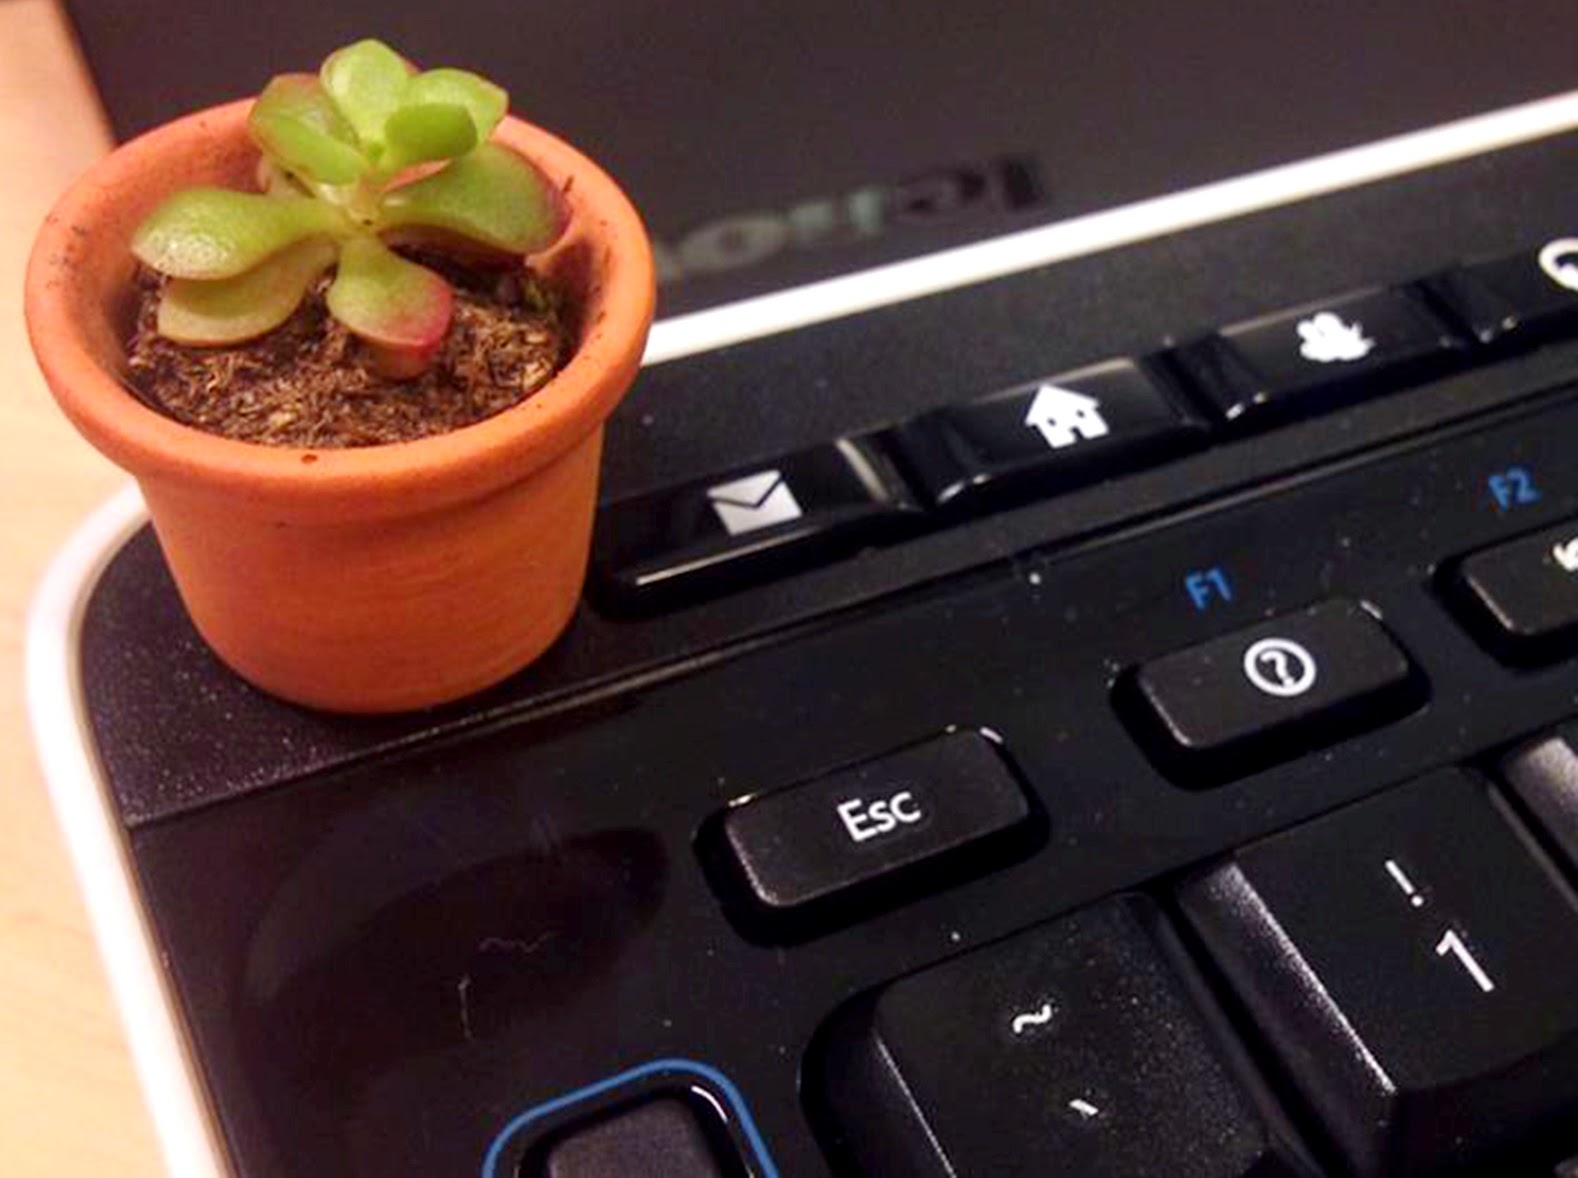 Miniature succulent in a pot on top of a computer keyboard.